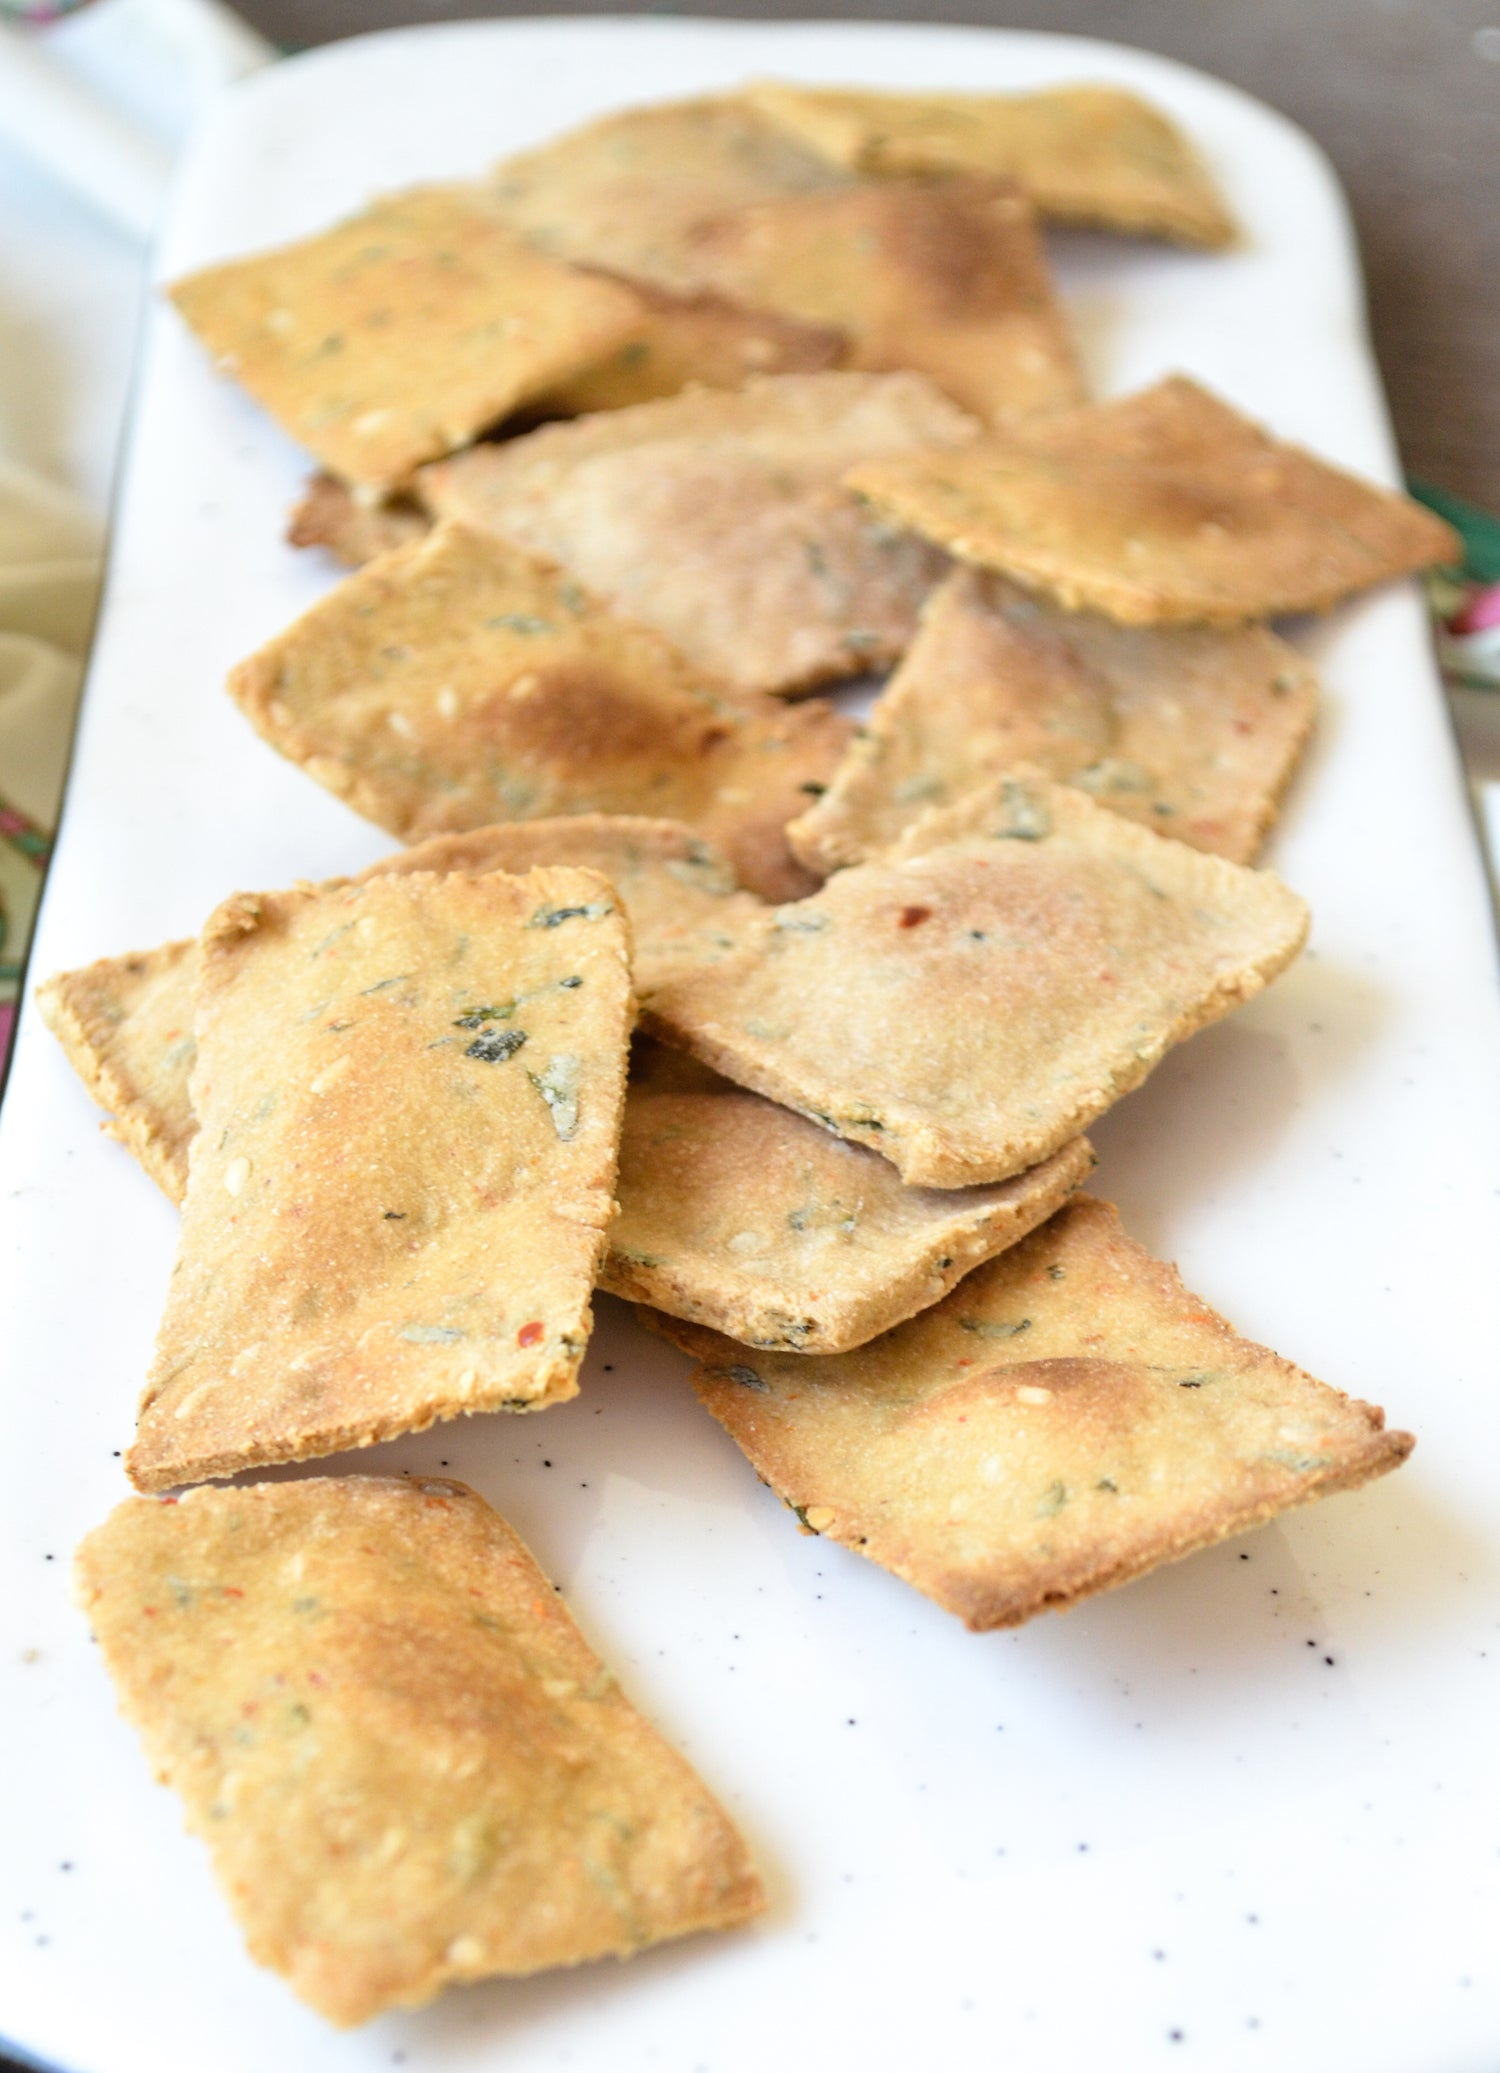 Homemade Methi garlic crackers